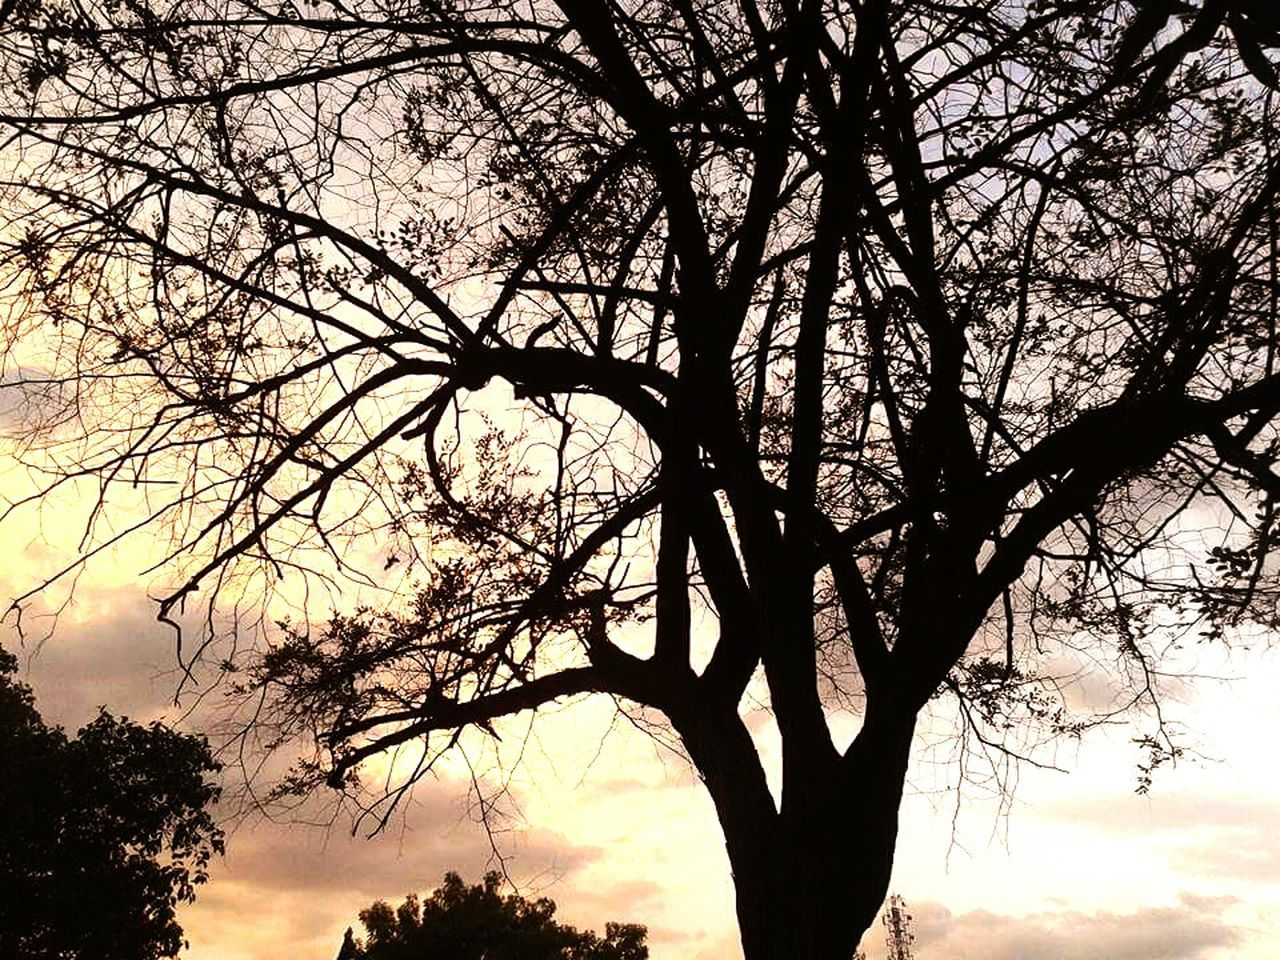 tree, branch, silhouette, beauty in nature, nature, tree trunk, bare tree, sunset, tranquil scene, sky, low angle view, tranquility, scenics, outdoors, no people, growth, day